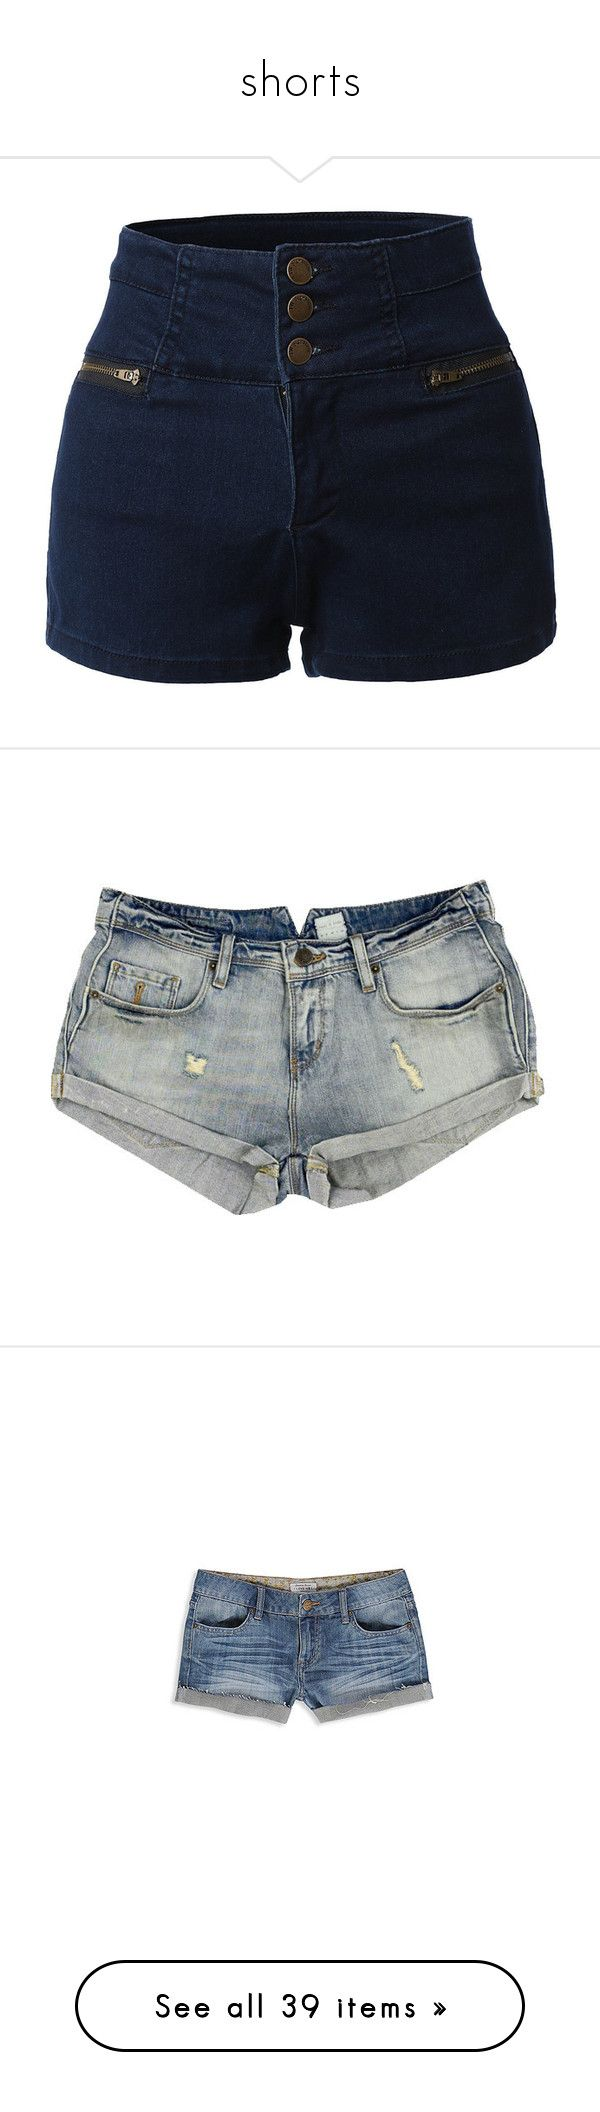 """""""shorts"""" by willfongdanielle ❤ liked on Polyvore featuring shorts, bottoms, high waist, short, stretch denim shorts, denim short shorts, high waisted short shorts, high rise jean shorts, high-waisted denim shorts and pants"""